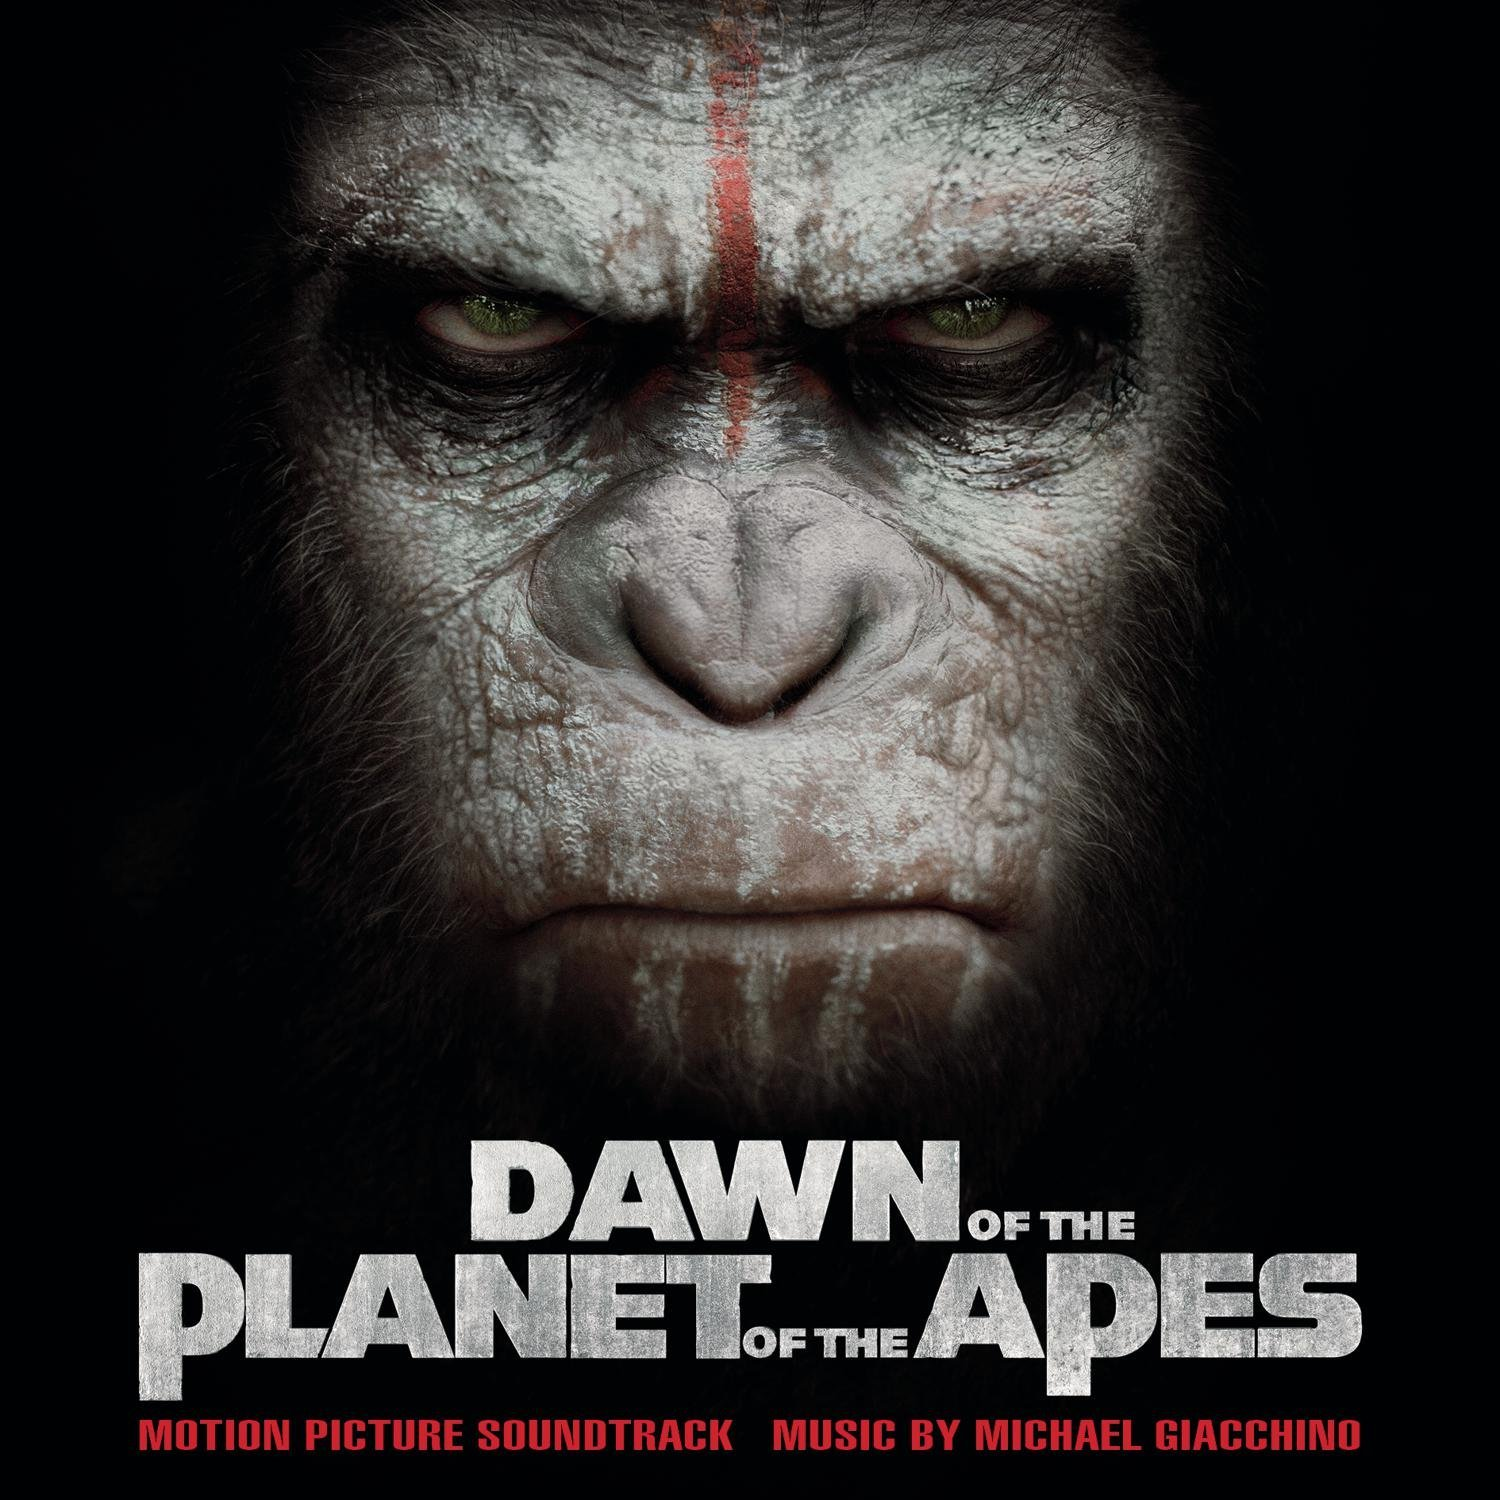 http://vignette4.wikia.nocookie.net/planetoftheapes/images/8/87/Dawn_of_the_Planet_of_the_Apes_(Soundtrack_Album).jpg/revision/latest?cb=20140704052051